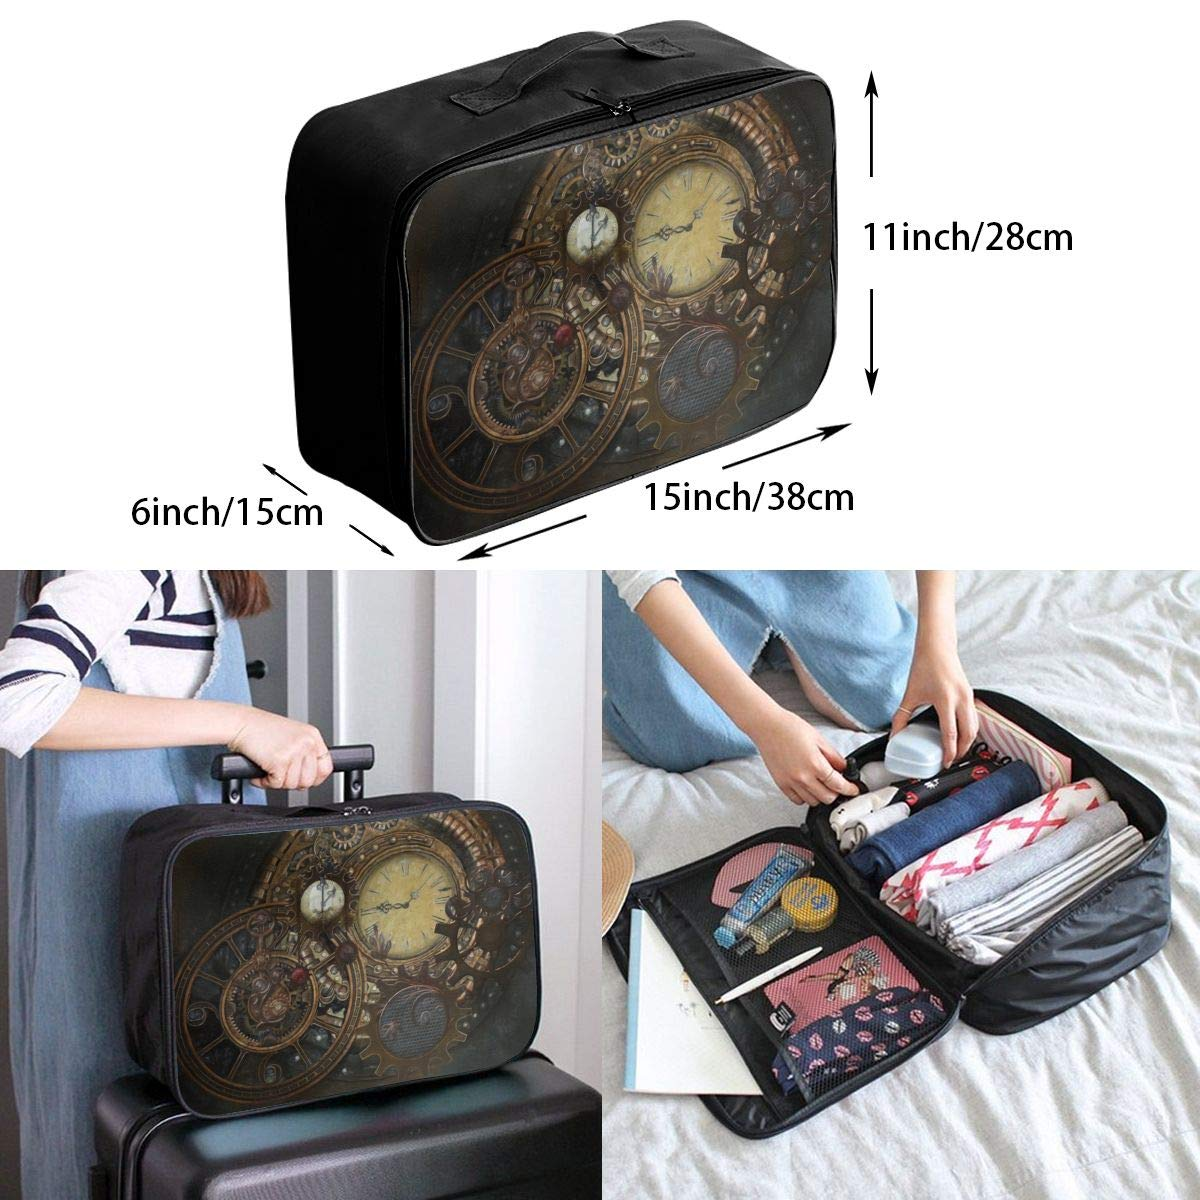 Lightweight Large Capacity Duffel Portable Luggage Bag Steampunk Clocks Travel Waterproof Foldable Storage Carry Tote Bag